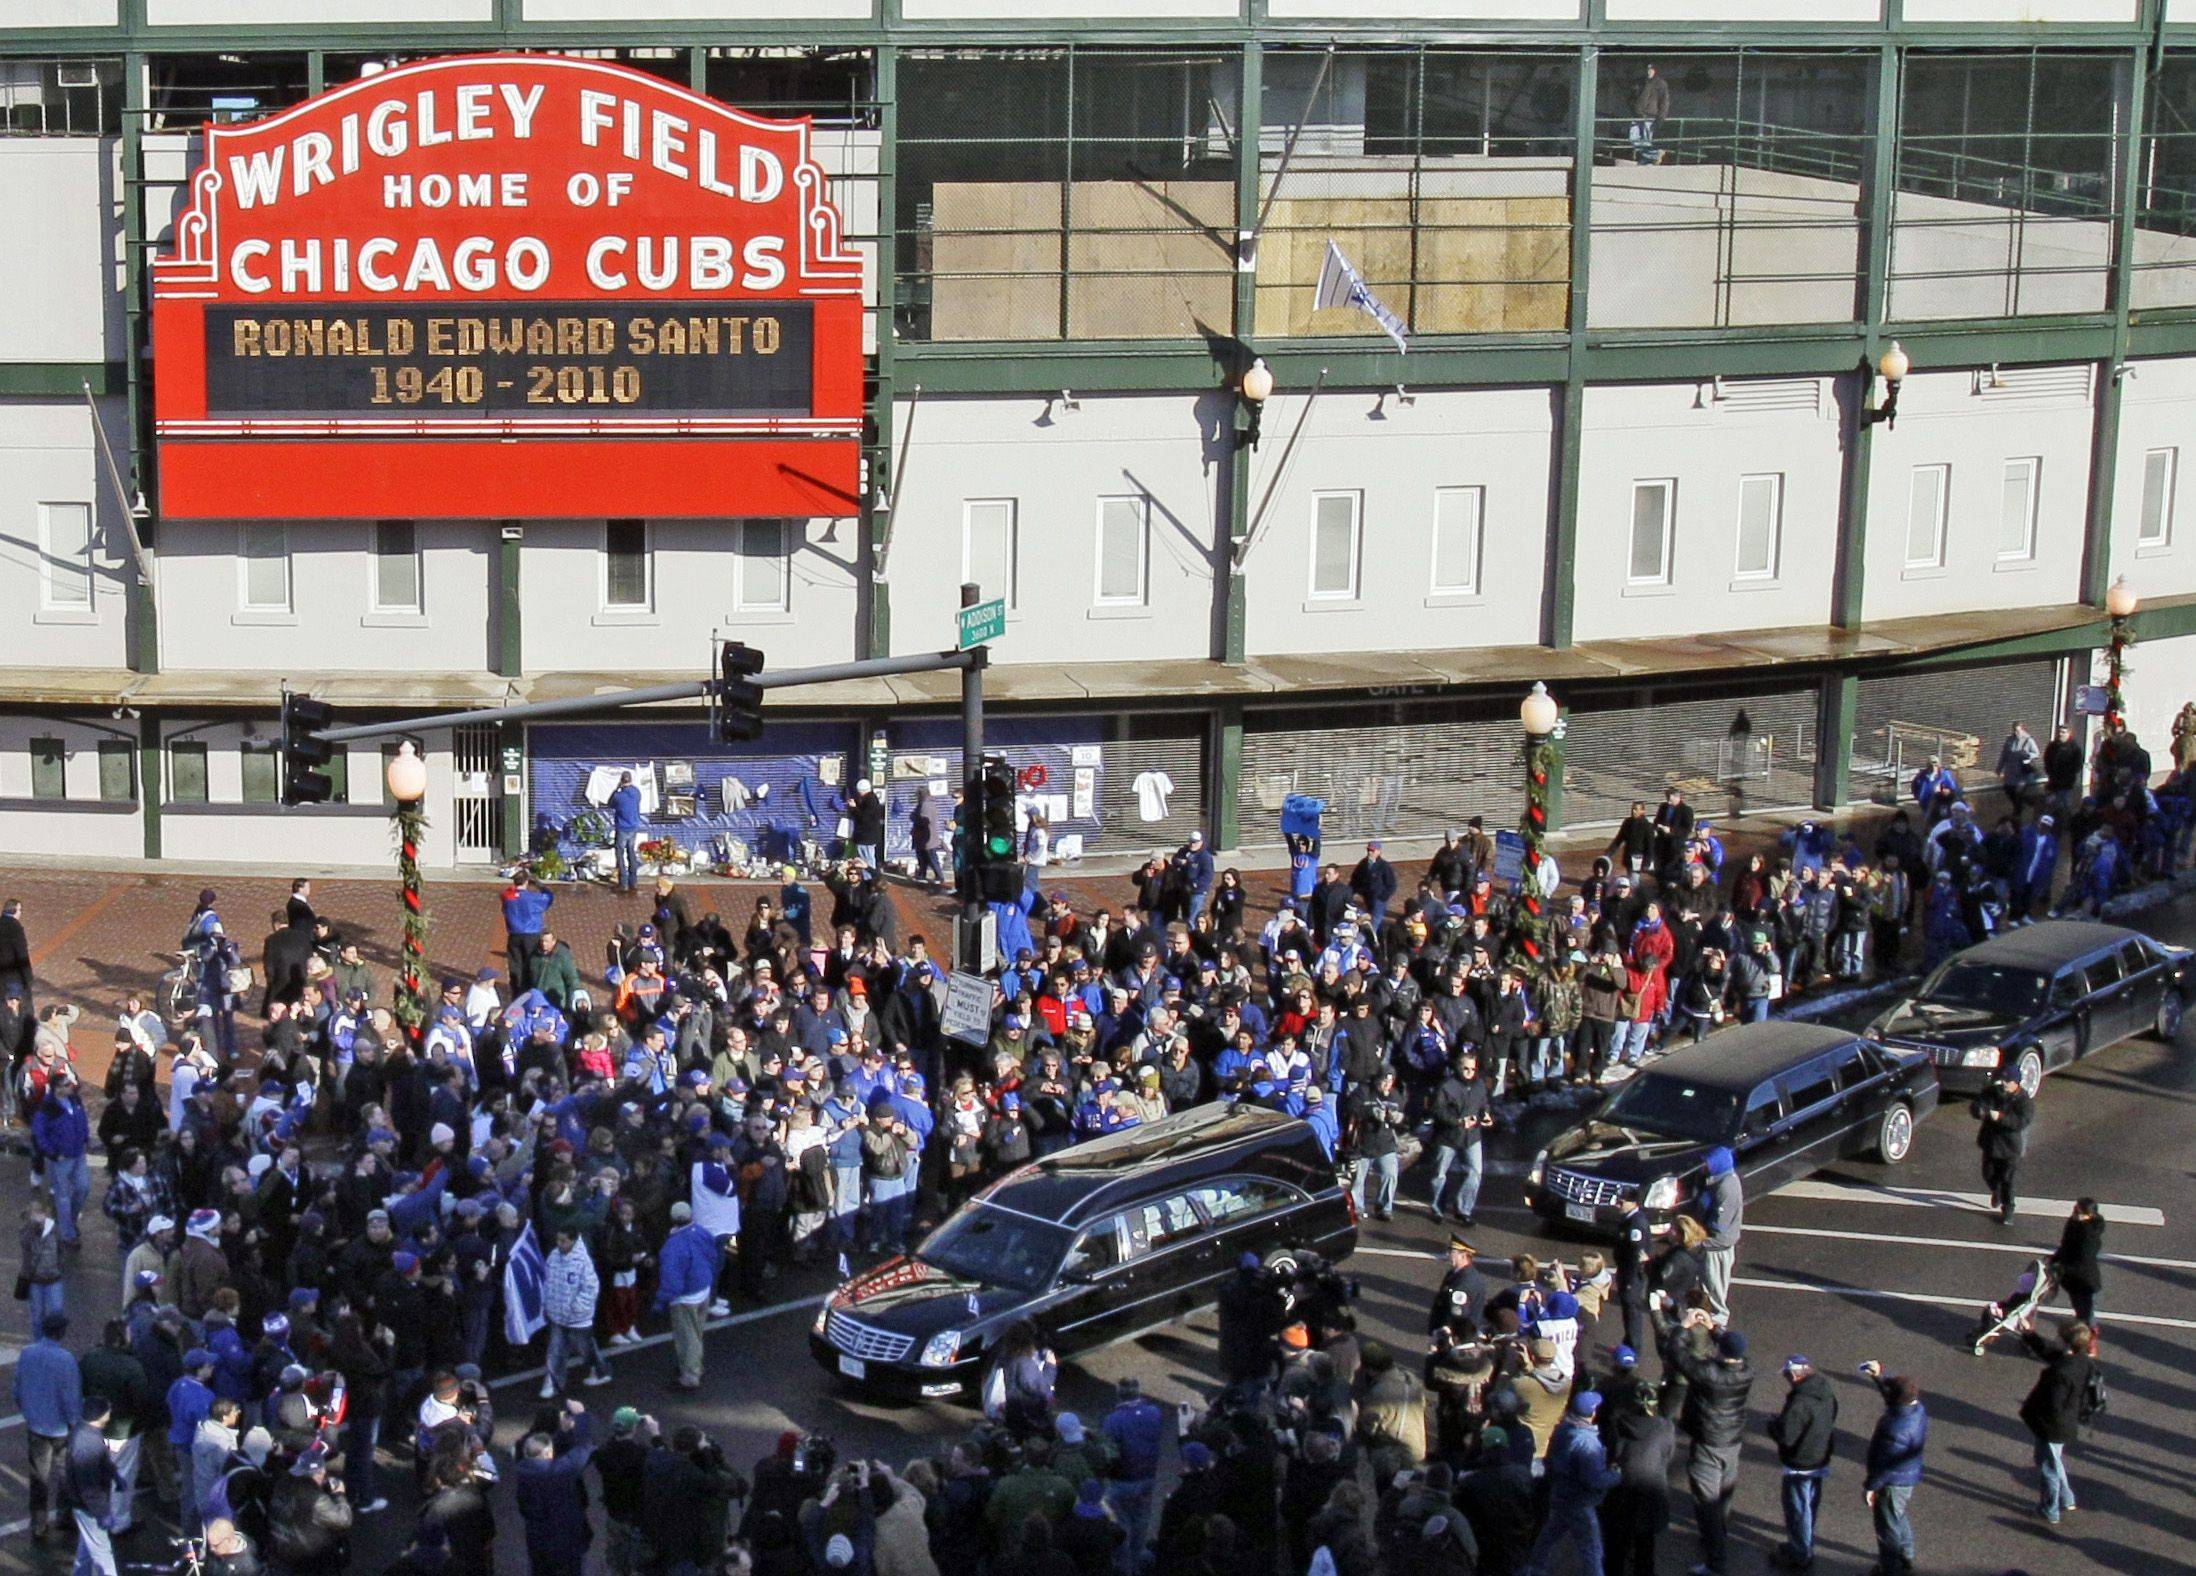 Baseball fans pay their respect as the funeral procession for former Chicago Cubs great and longtime radio announcer Ron Santo drives past Wrigley Field, Friday, Dec. 10, 2010 in Chicago. The nine-time all-star died Dec. 2 in an Arizona hospital from complications of bladder cancer. He was 70.